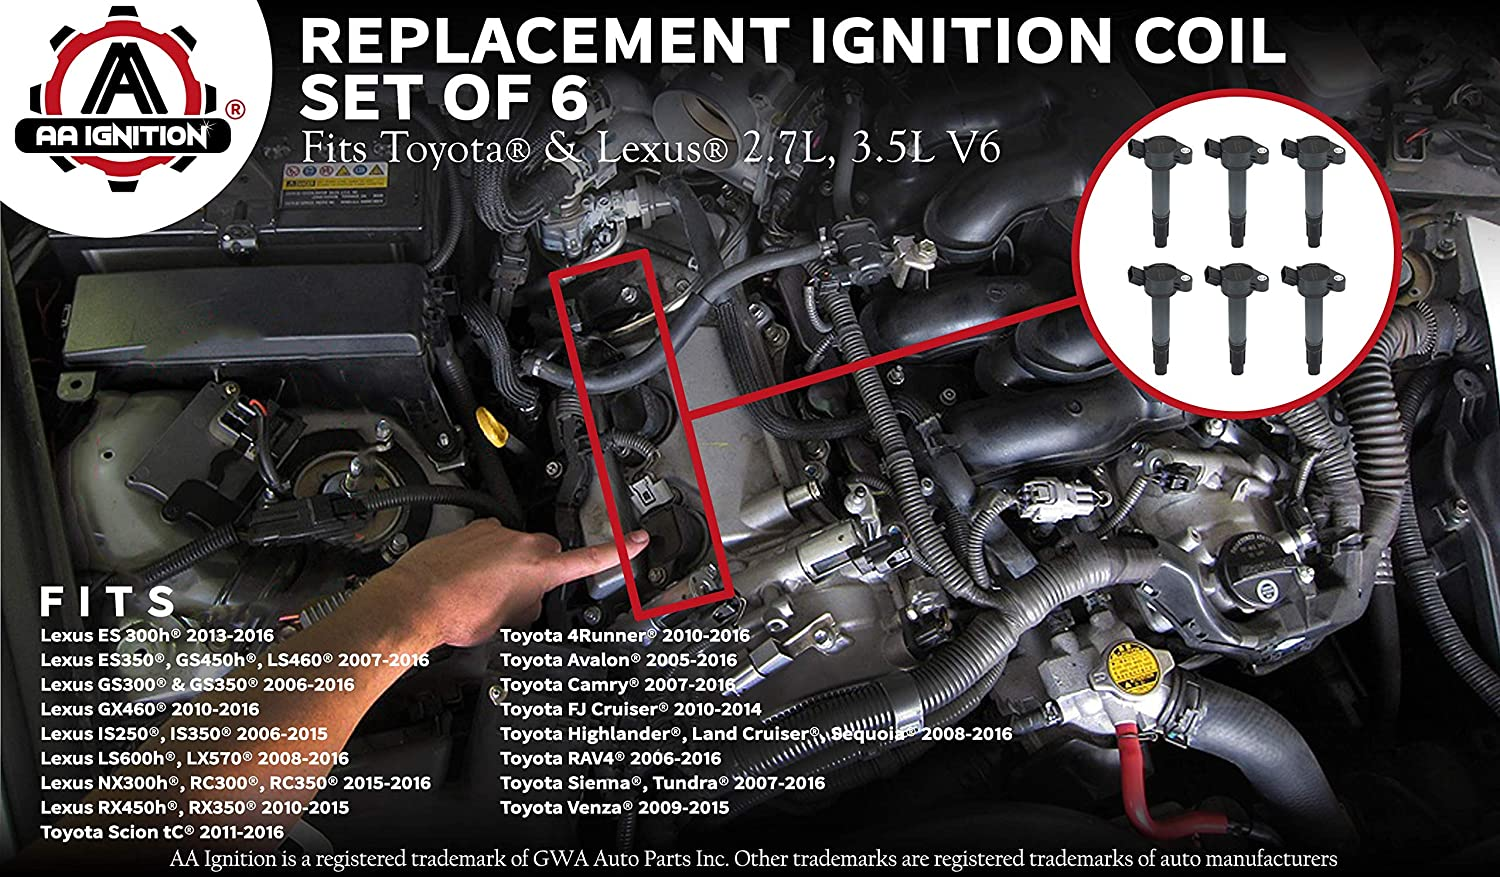 6 PCS Ignition Coil Pack for 6 /& 4 cyl eng AVALON CAMRY ES350 HIGHLANDER IS350 RAV4 RX350 RX450H SIENNA VENZA